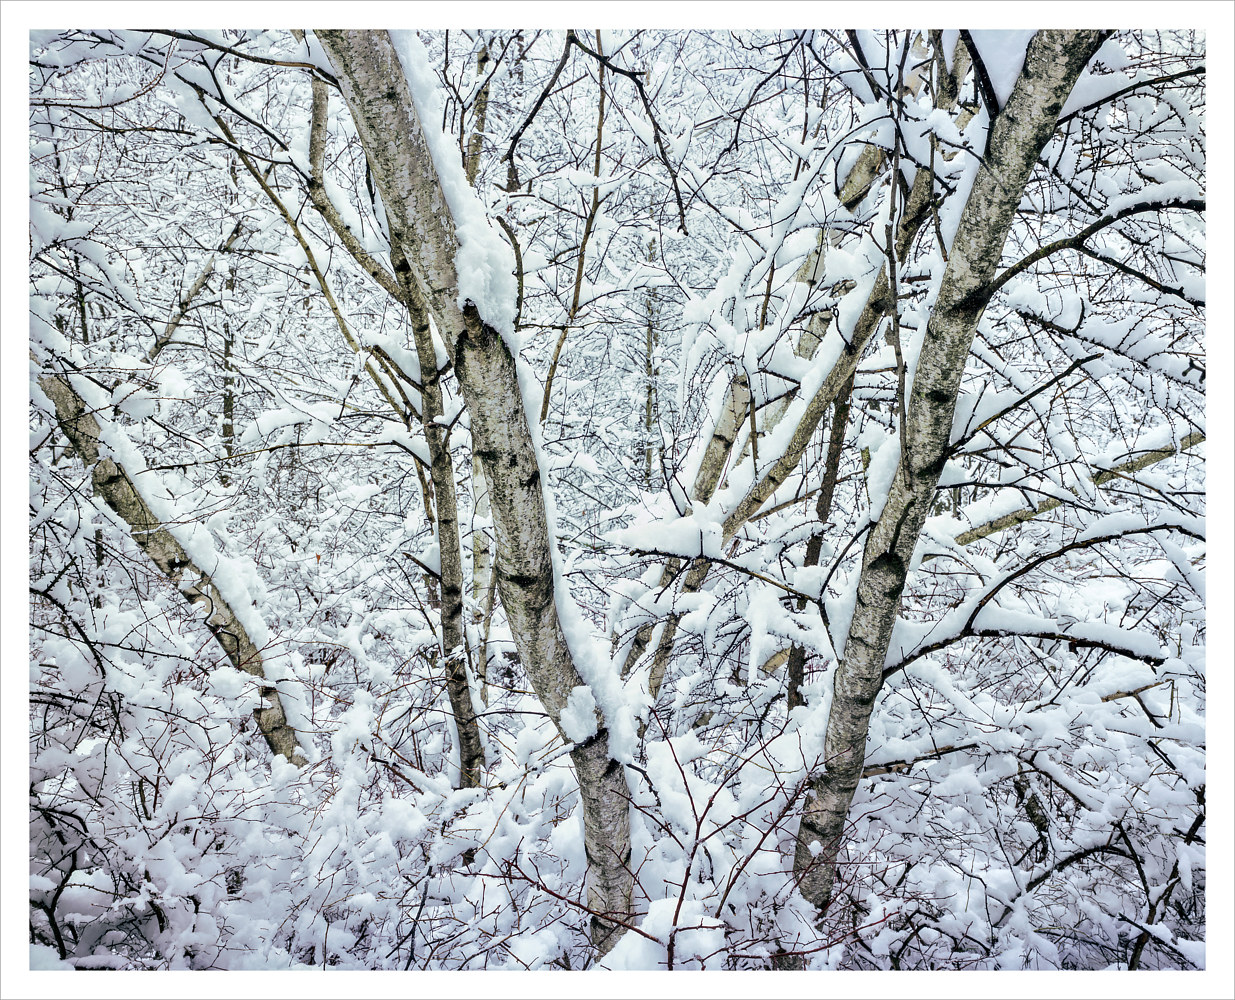 Gray Birch, Winter by Wayne Mazorow